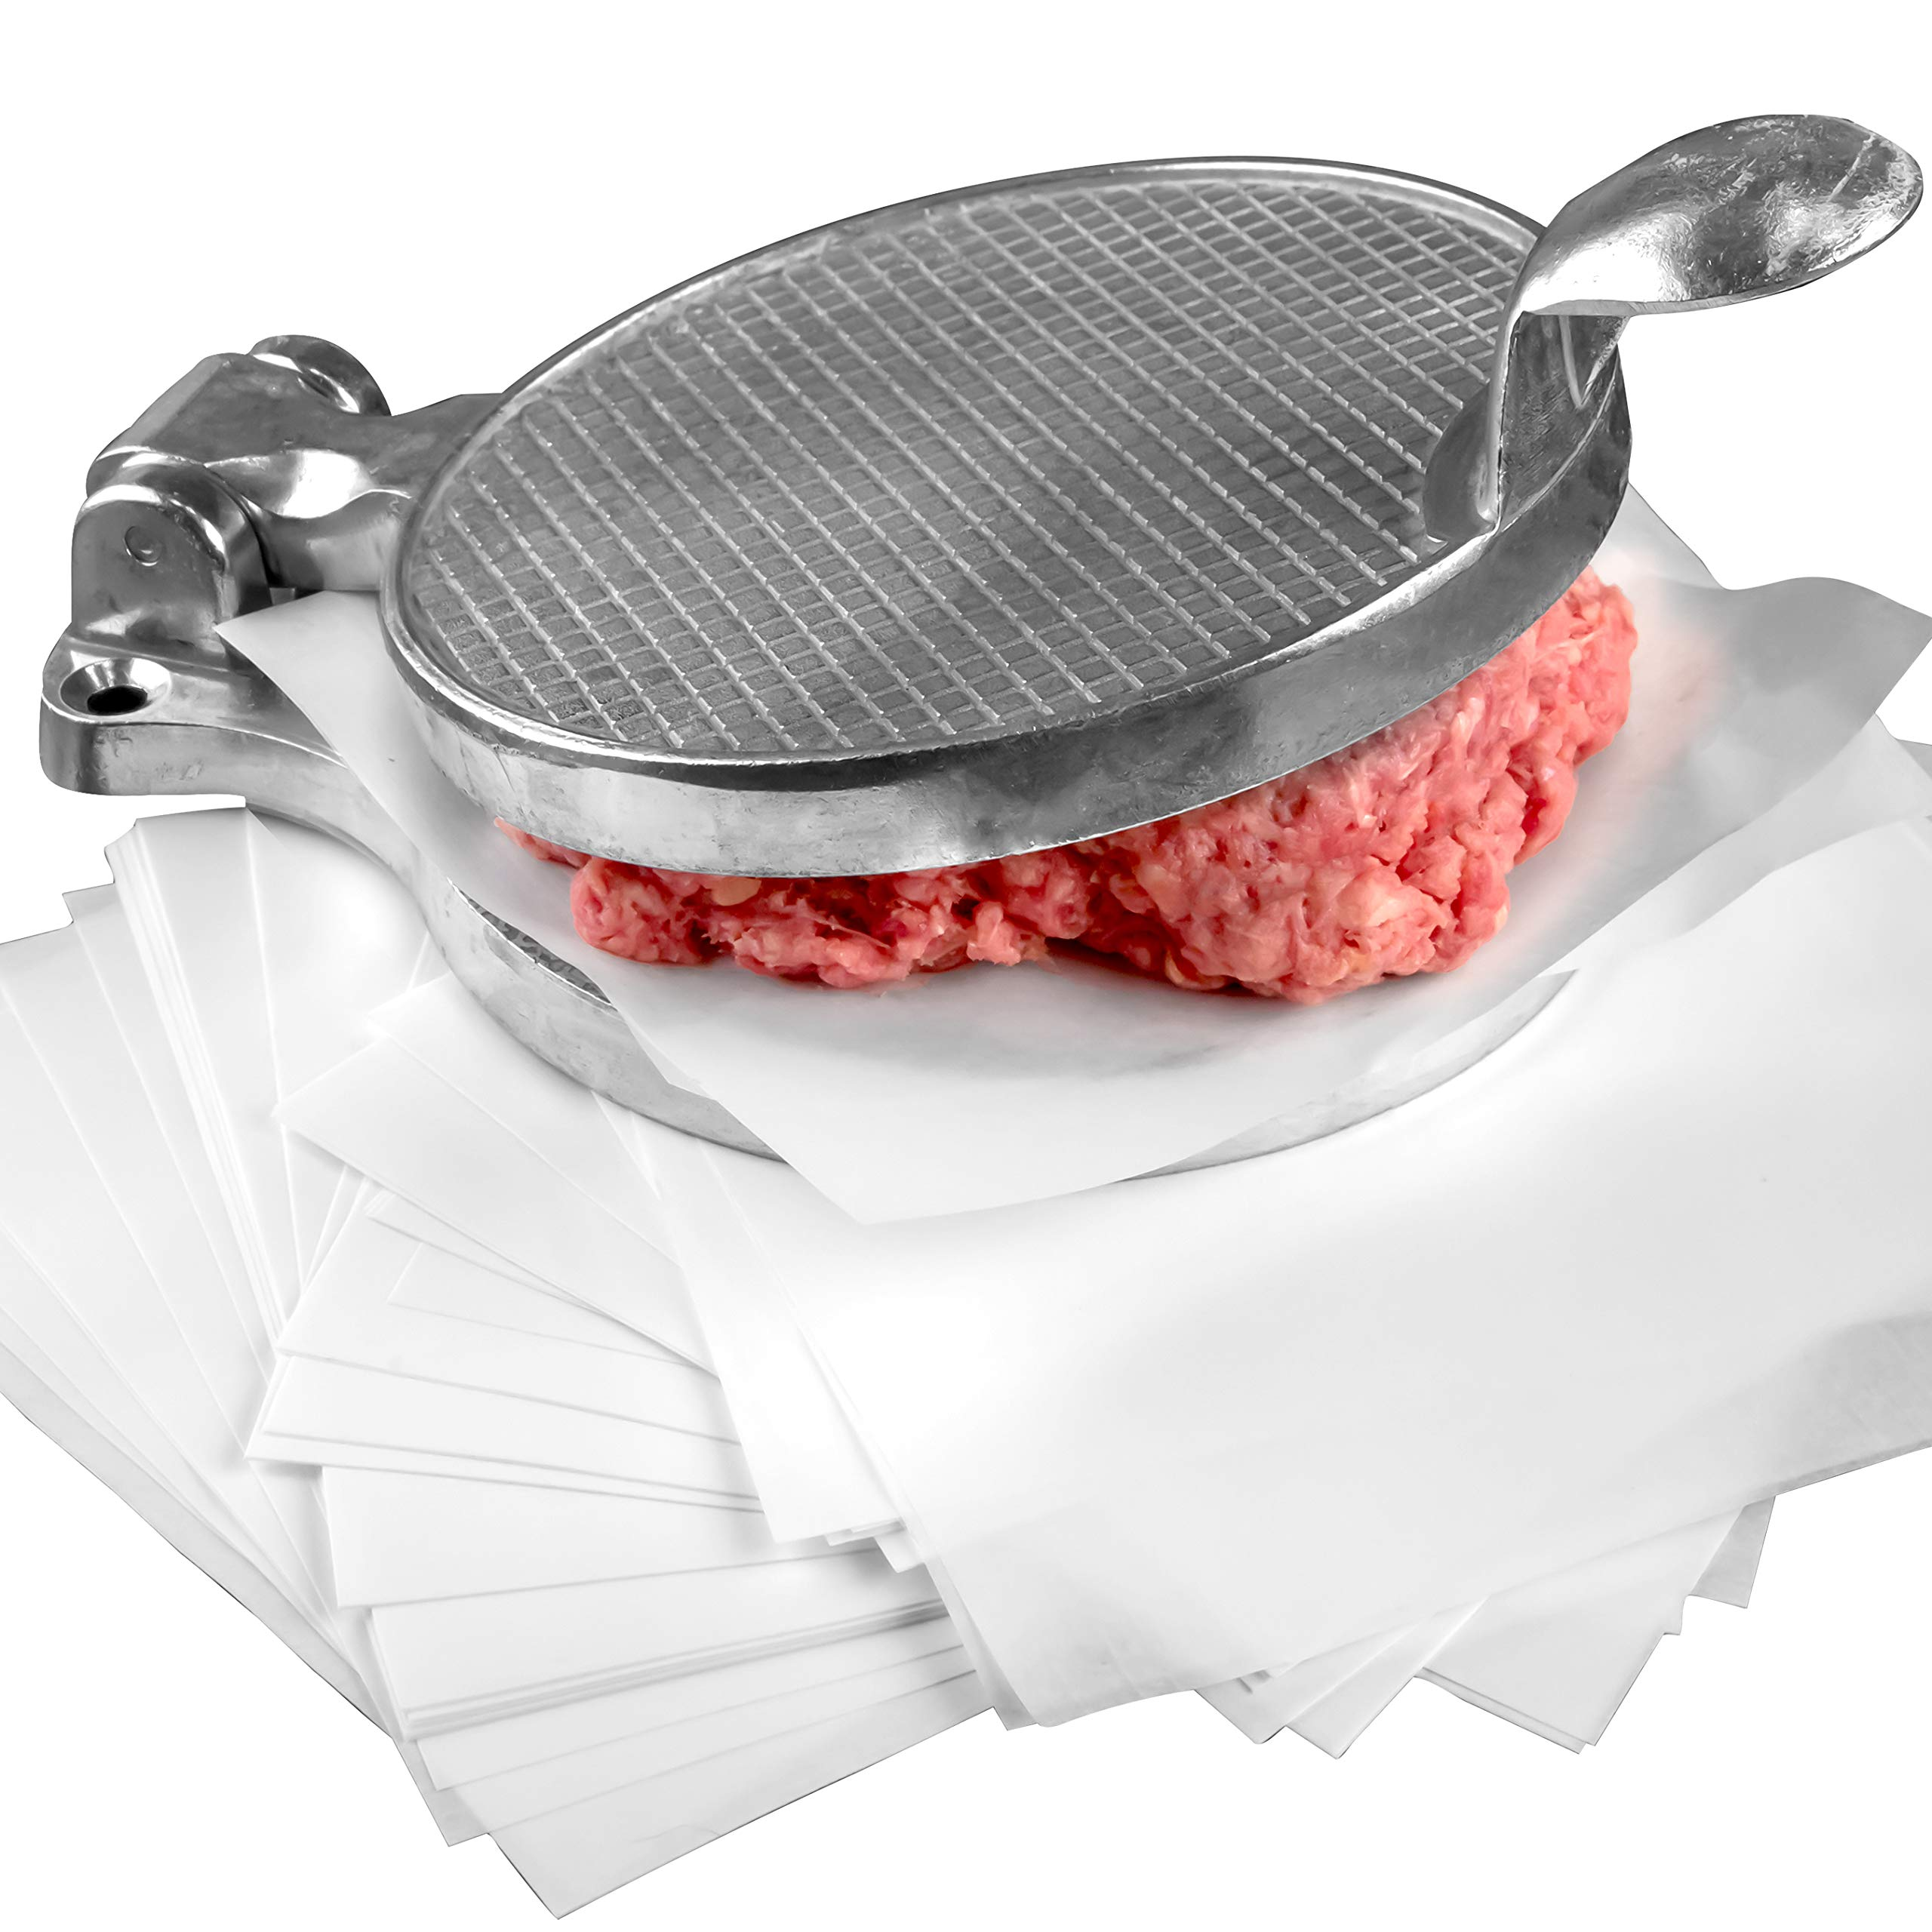 Restaurant-Grade Burger Press and Patty Paper Combo Set. Cast Aluminum 4.5 Hamburger Maker with 1000 Pk 4.75 x 5 Nonstick Wax Butcher Squares! Great for .25 Lb Ground Beef or Chop Steak Patties. by Avant Grub